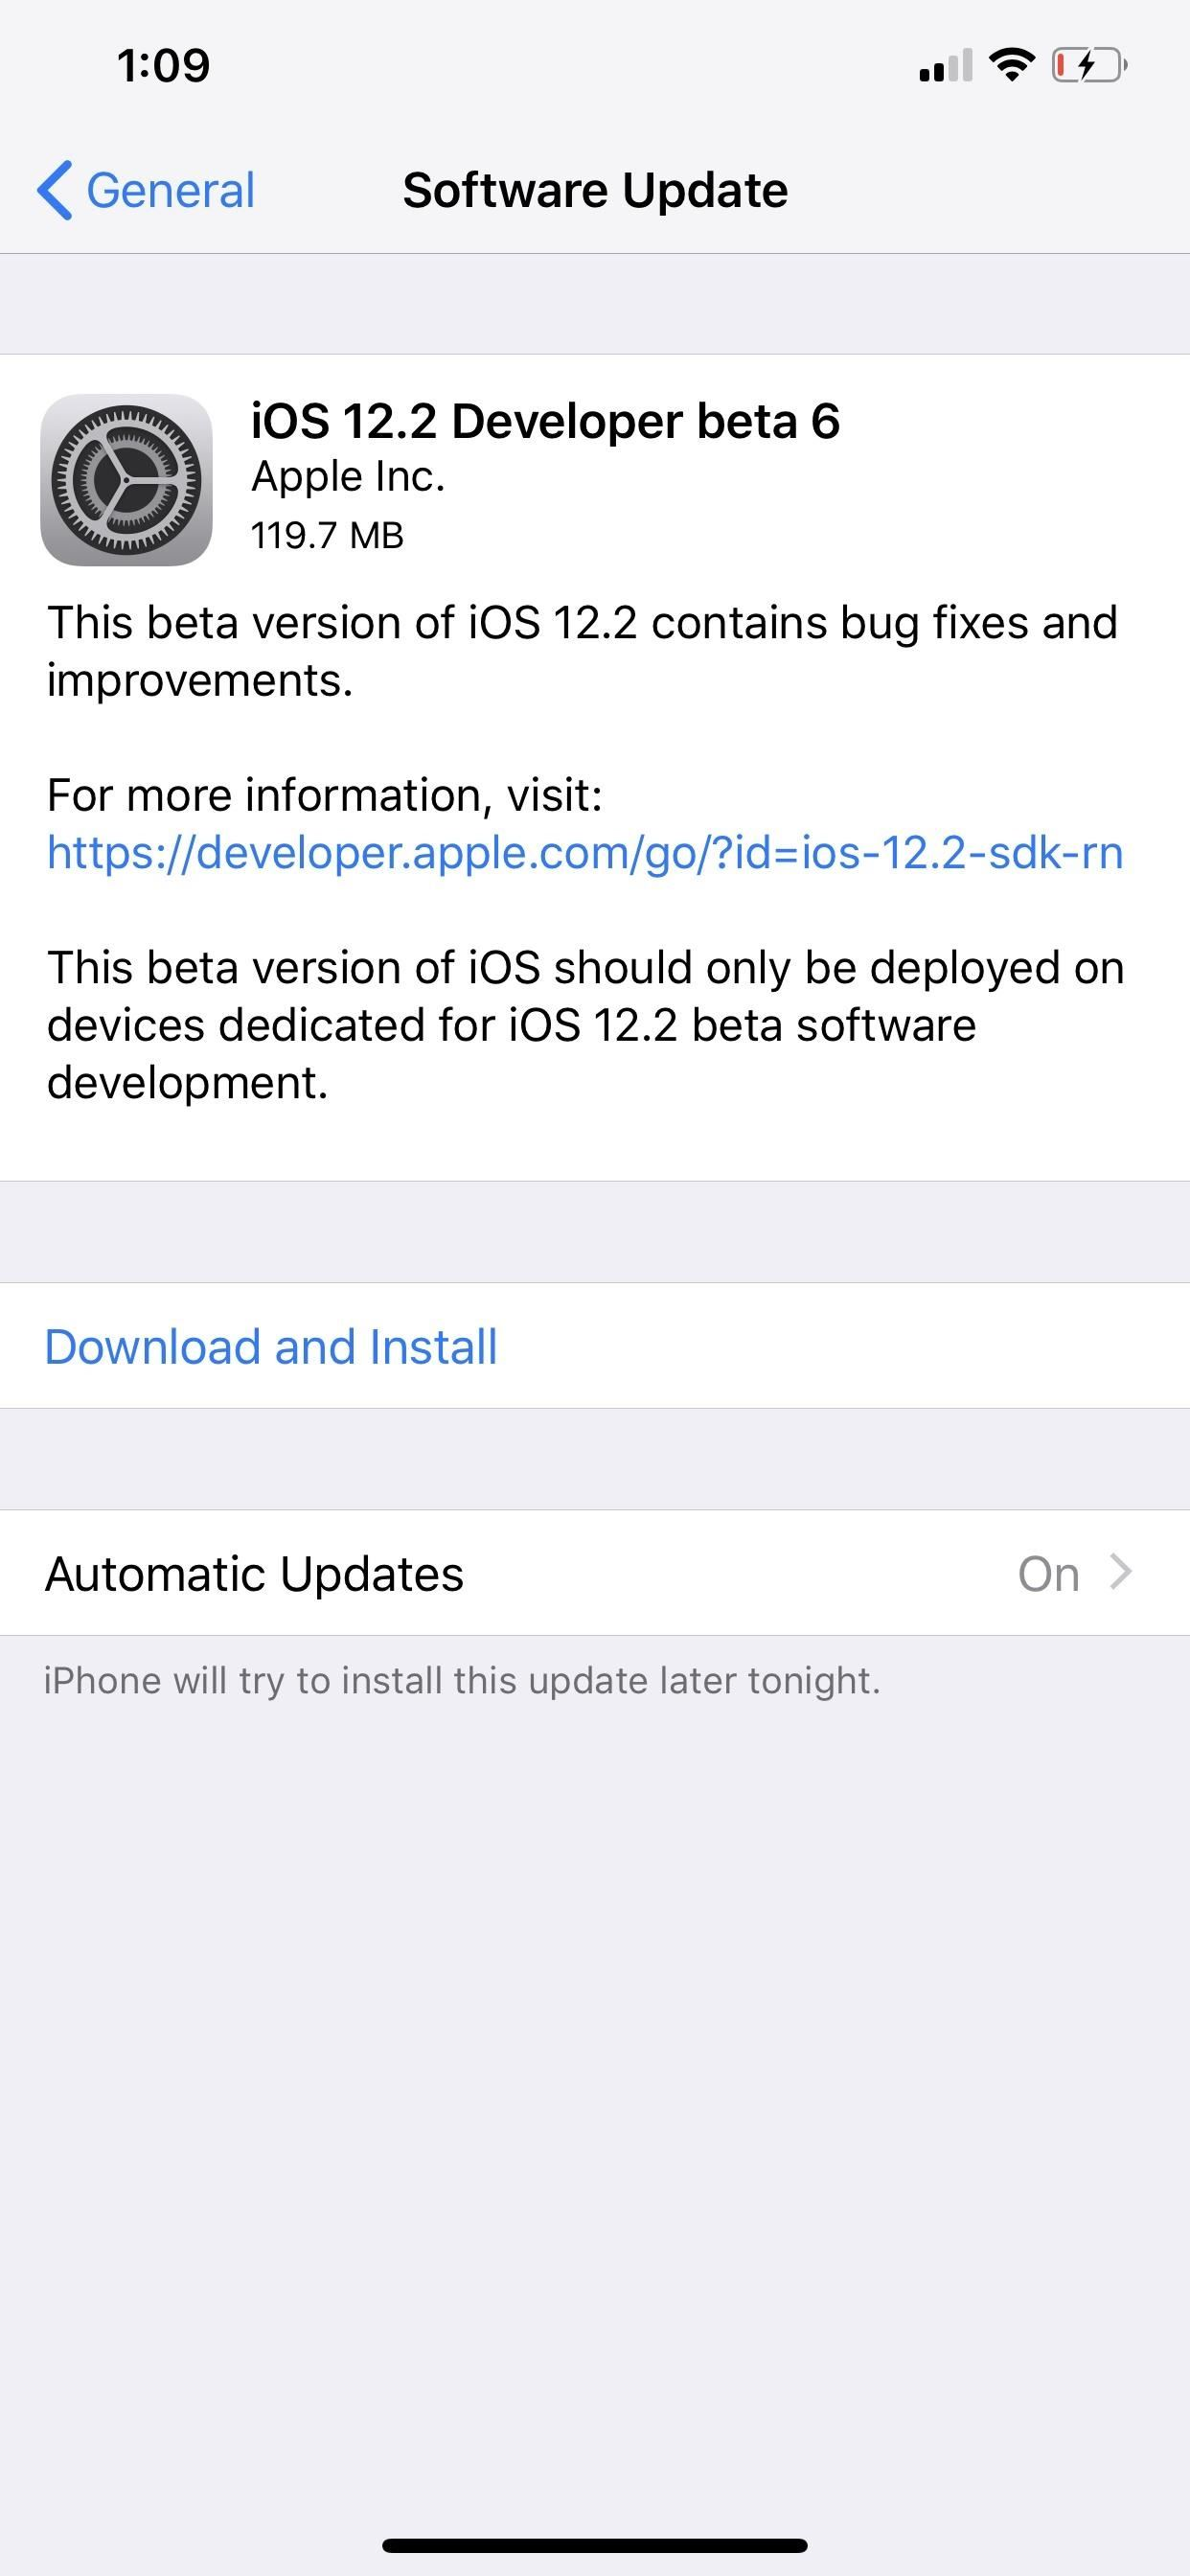 Apple Just Released iOS 12.2 Beta 6 for iPhone to Developers, Adds New 'Warranty Status' in Settings